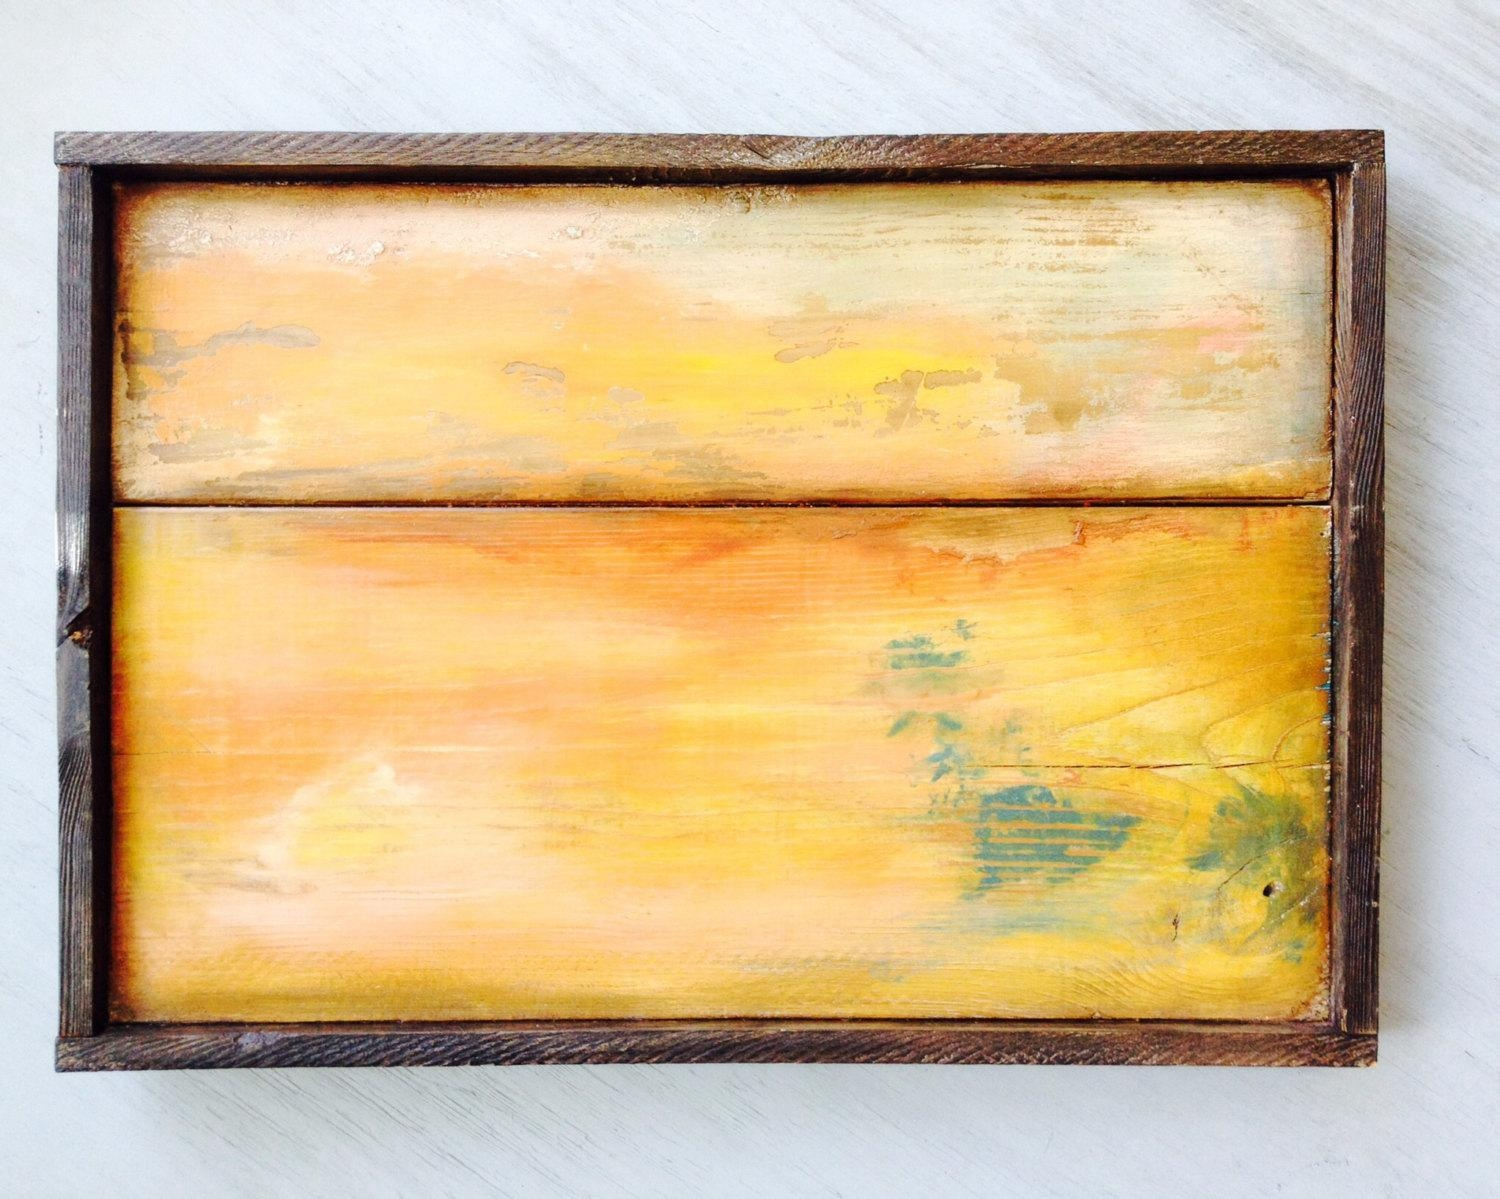 Distressed Wood Boards Reclaimed Wood Wall Art Solid Wood Inside Yellow And Blue Wall Art (Image 8 of 20)